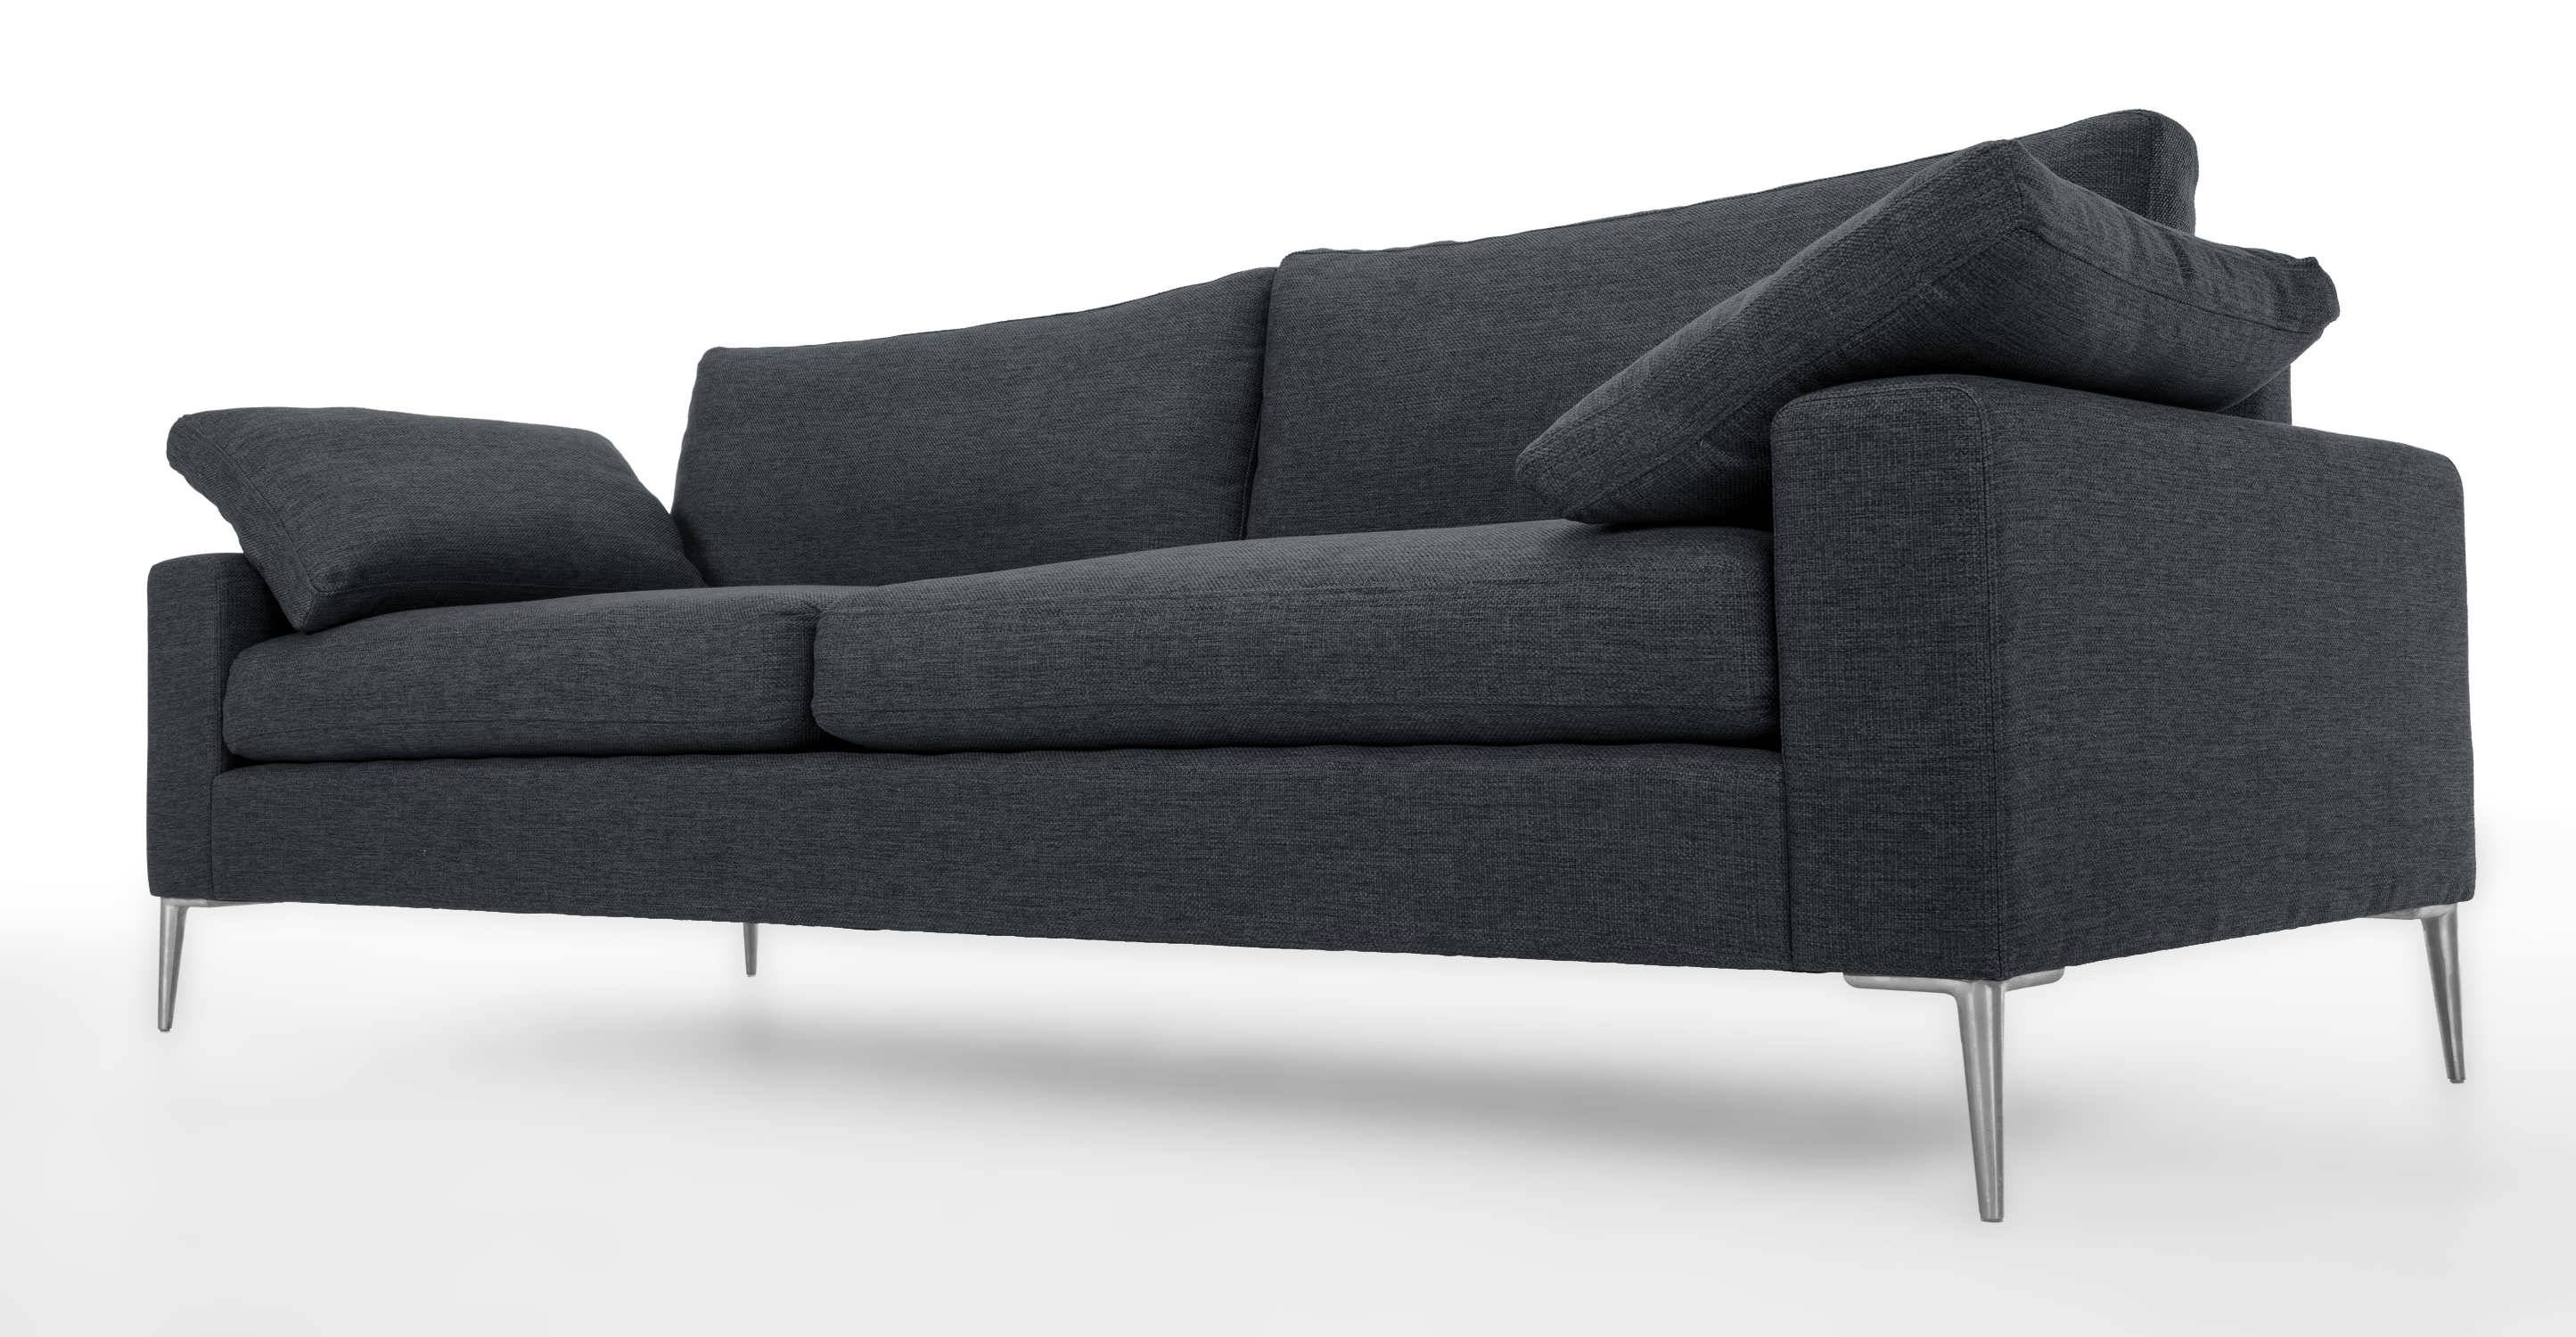 Sofa : Flexsteel Sofa Leather Reclining Sofa Ikea Sofa Bed regarding Microsuede Sofa Beds (Image 9 of 15)